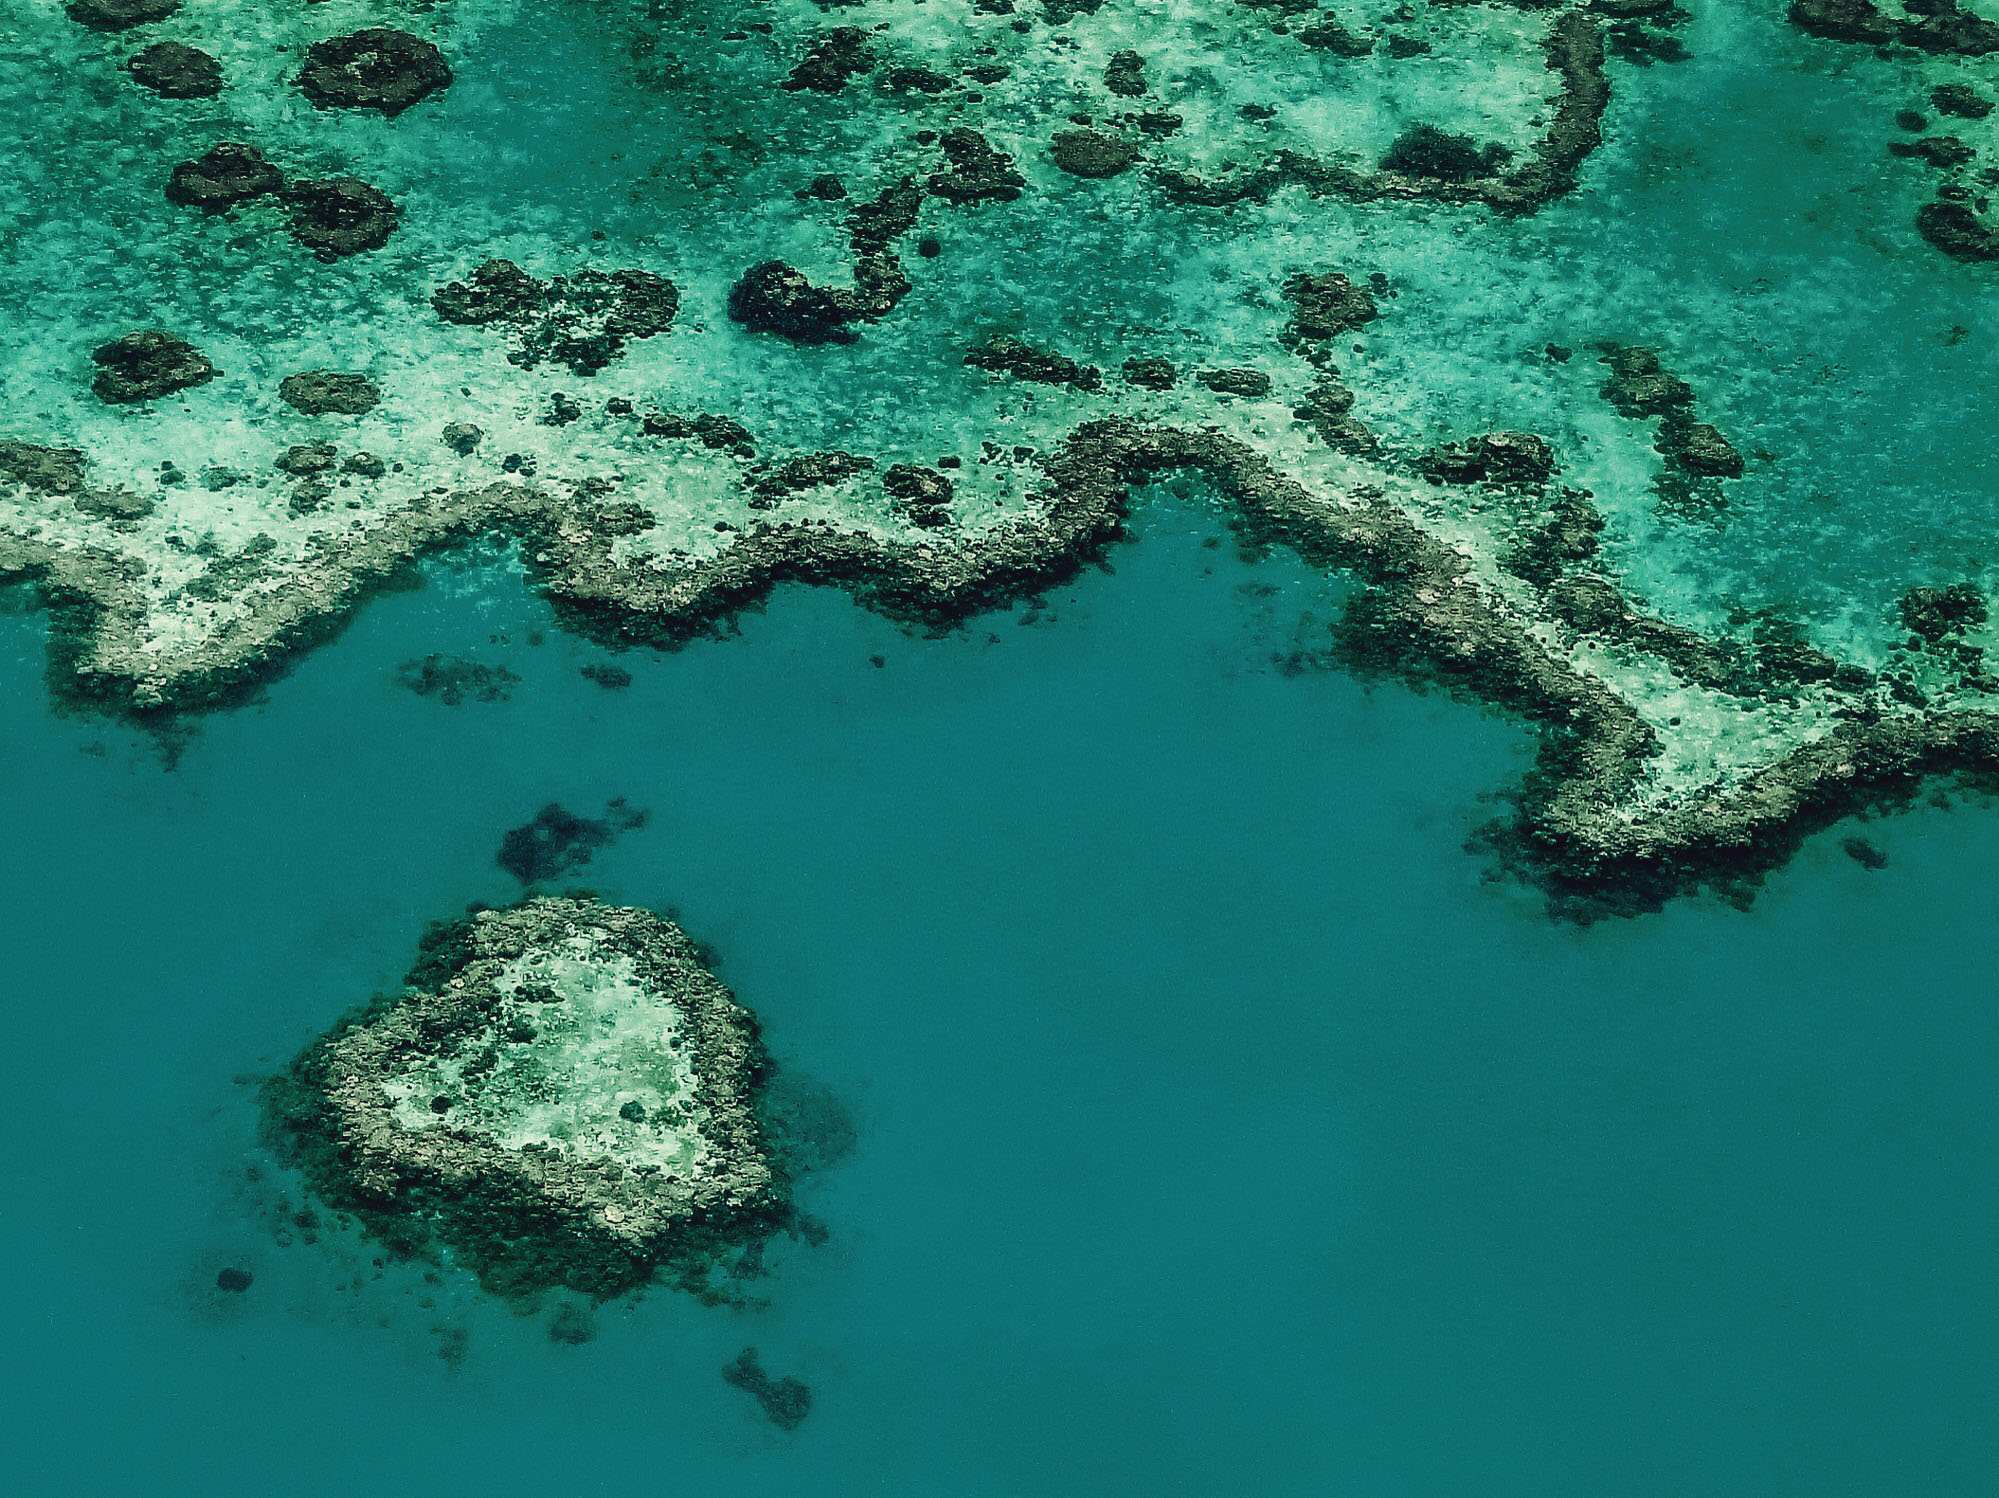 Heart Reef, Great Barrier Reef - Australia